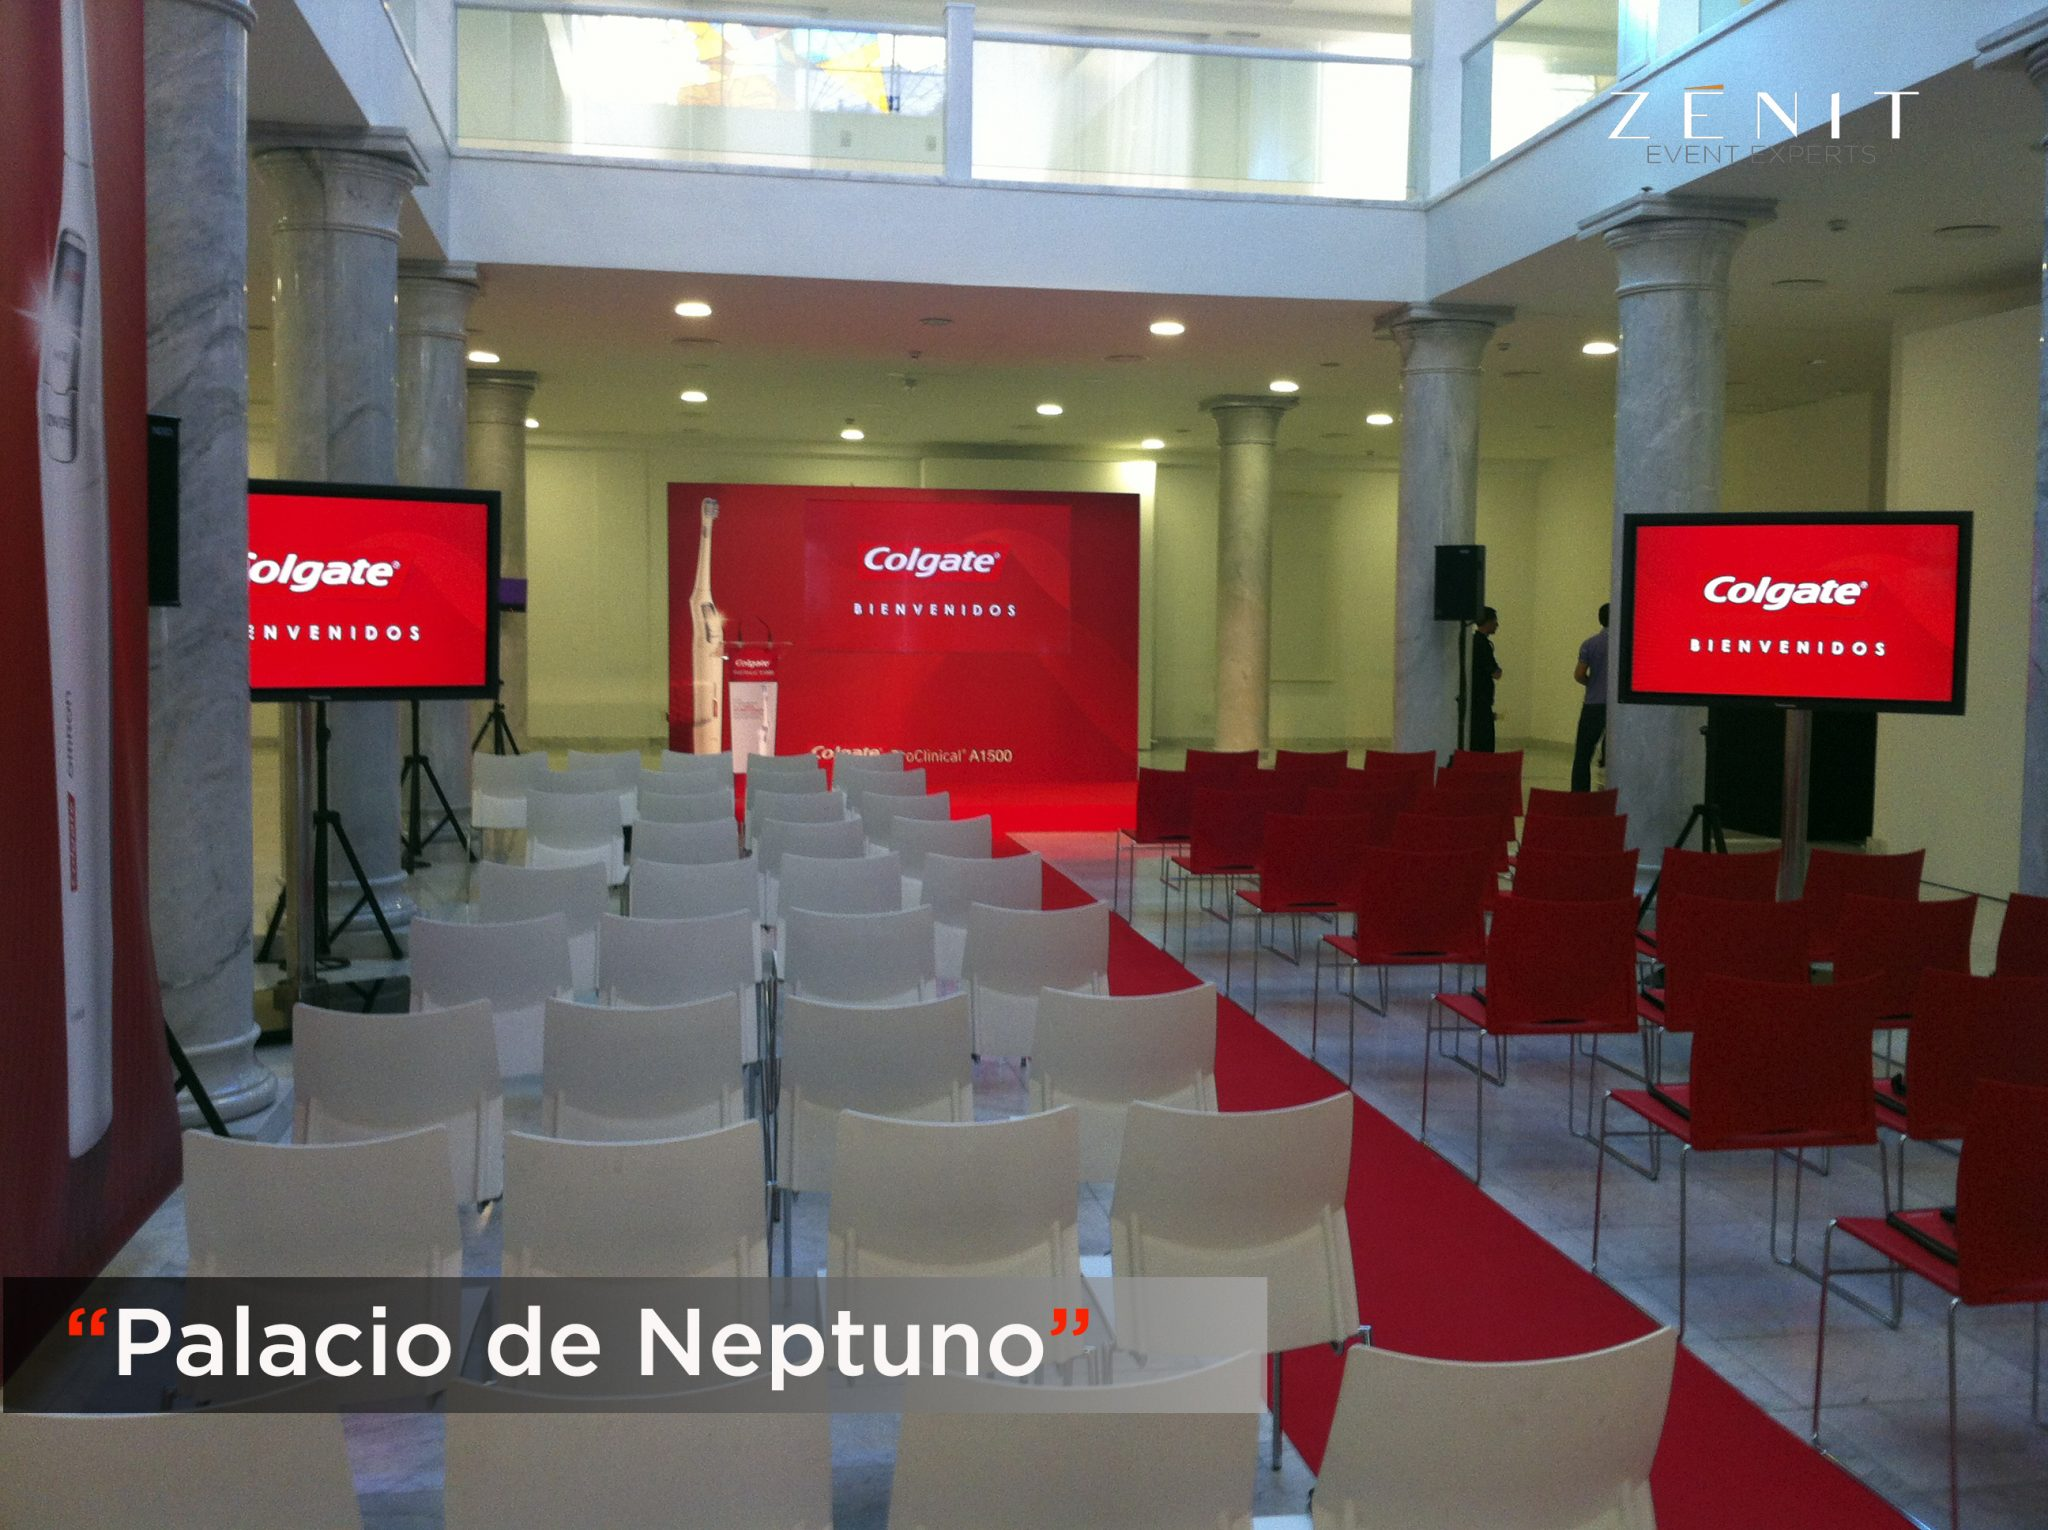 Zenit Event Experts. Palacio de Neptuno.